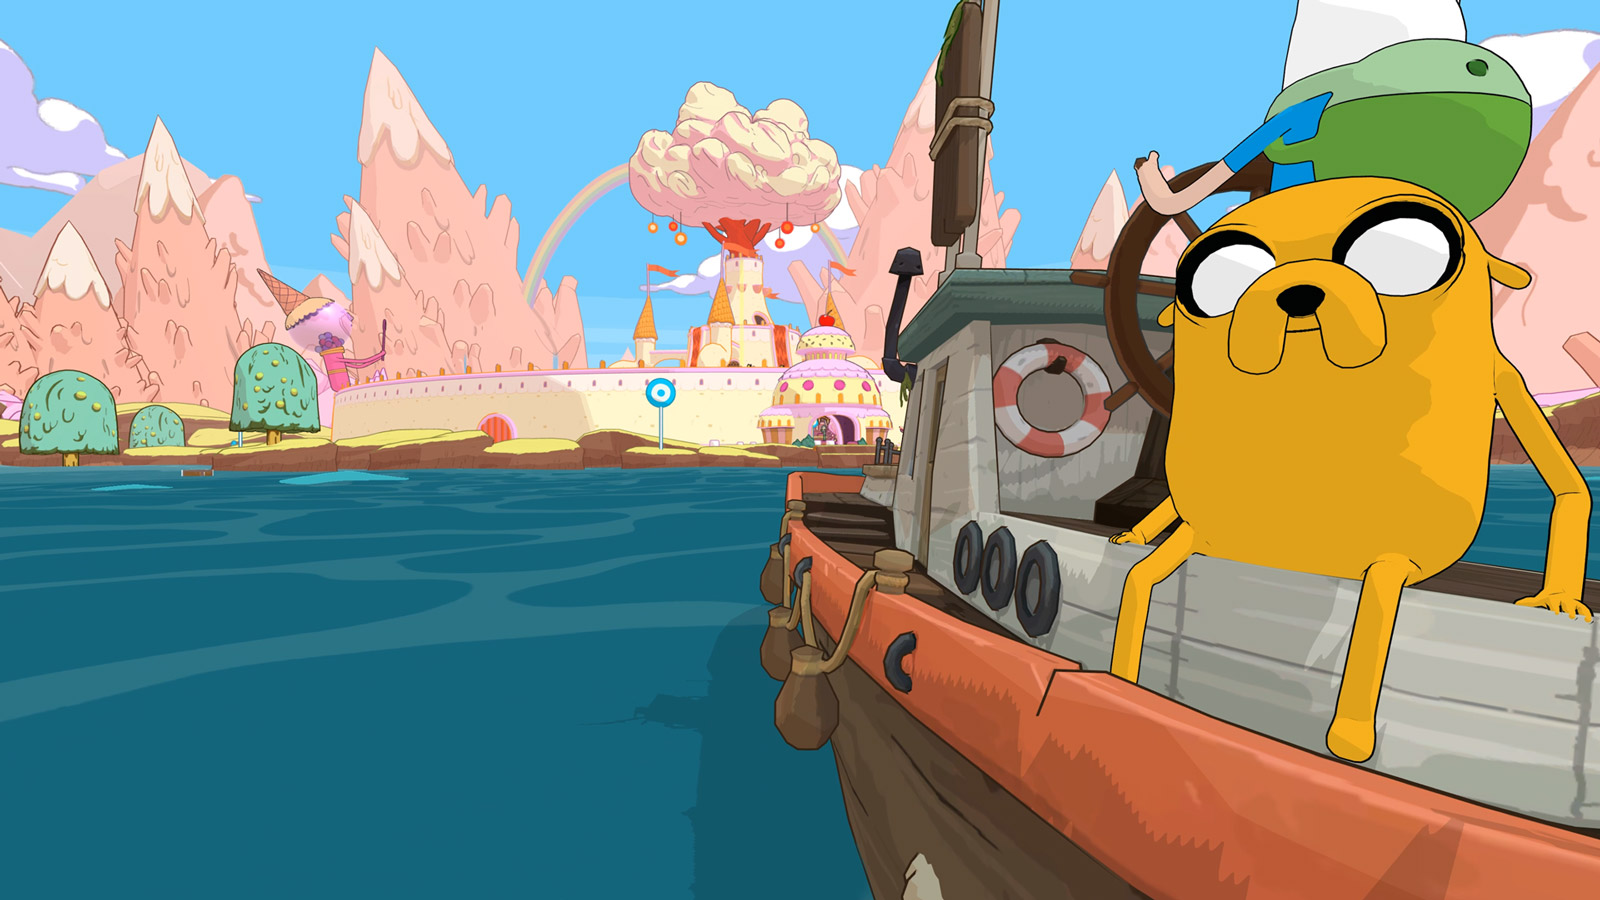 Adventure Time: Pirates of the Enchiridion Wallpaper in 1600x900